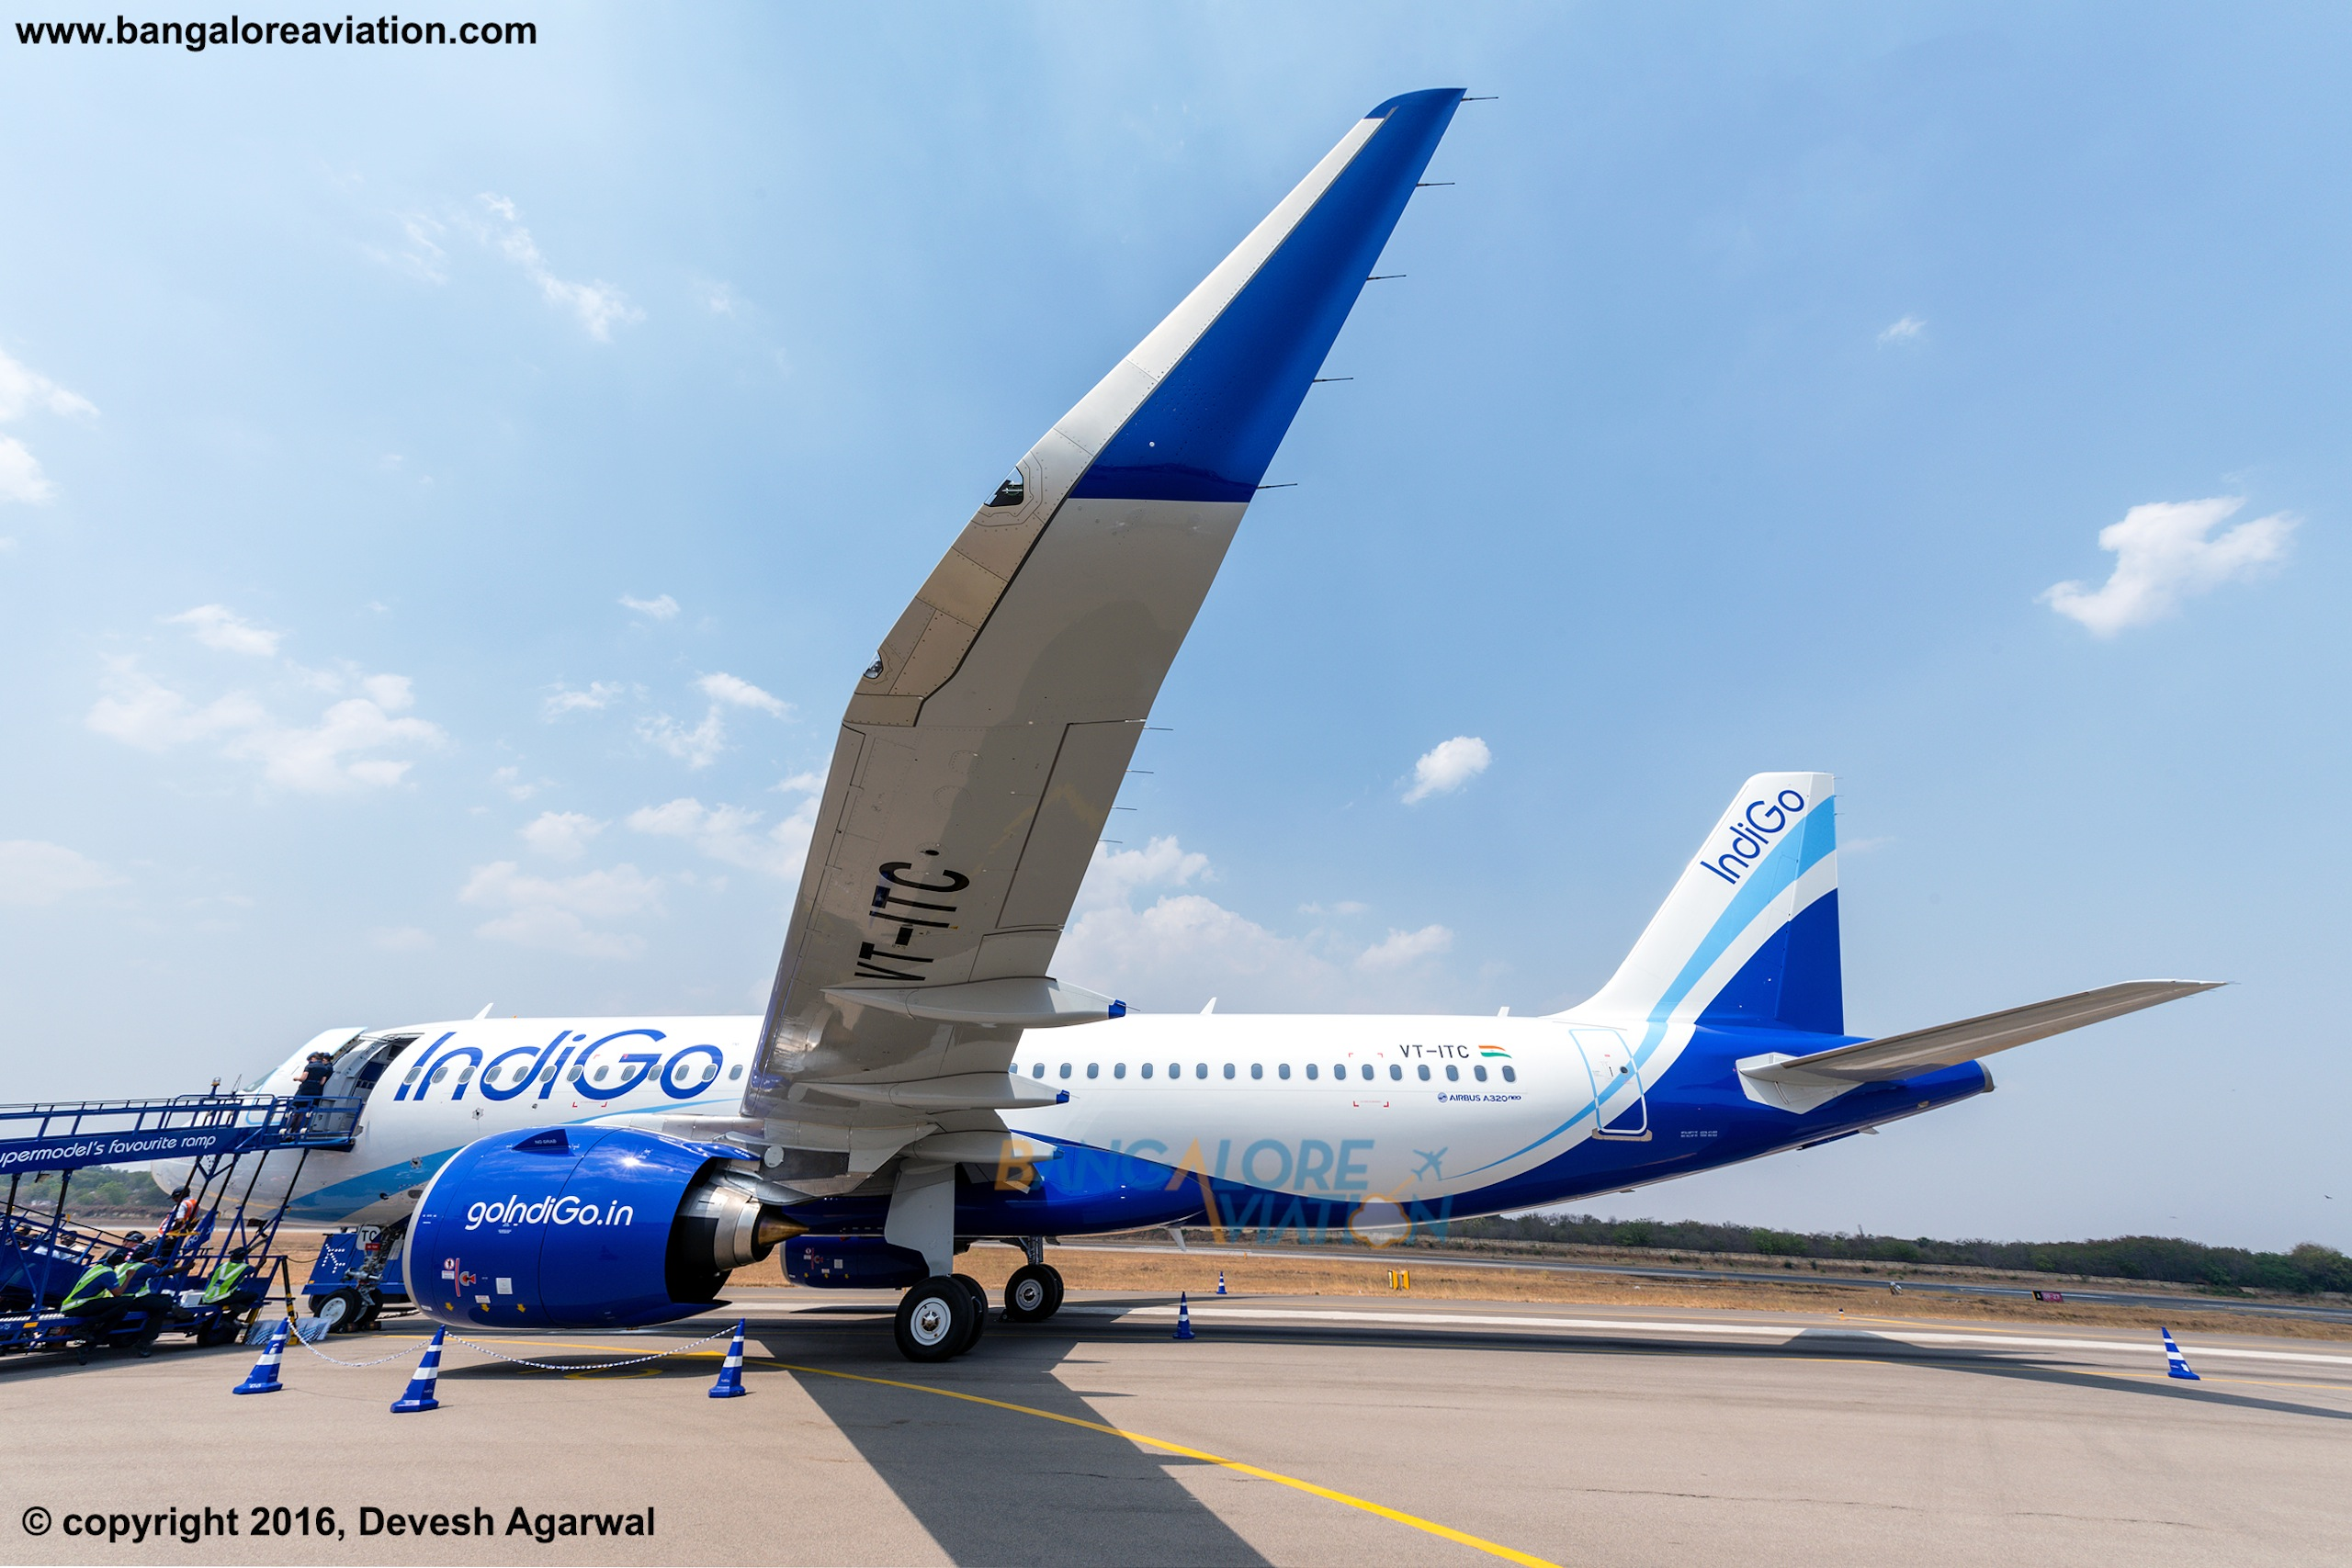 Exclusive photos from inside IndiGo's A320neo - Bangalore ...